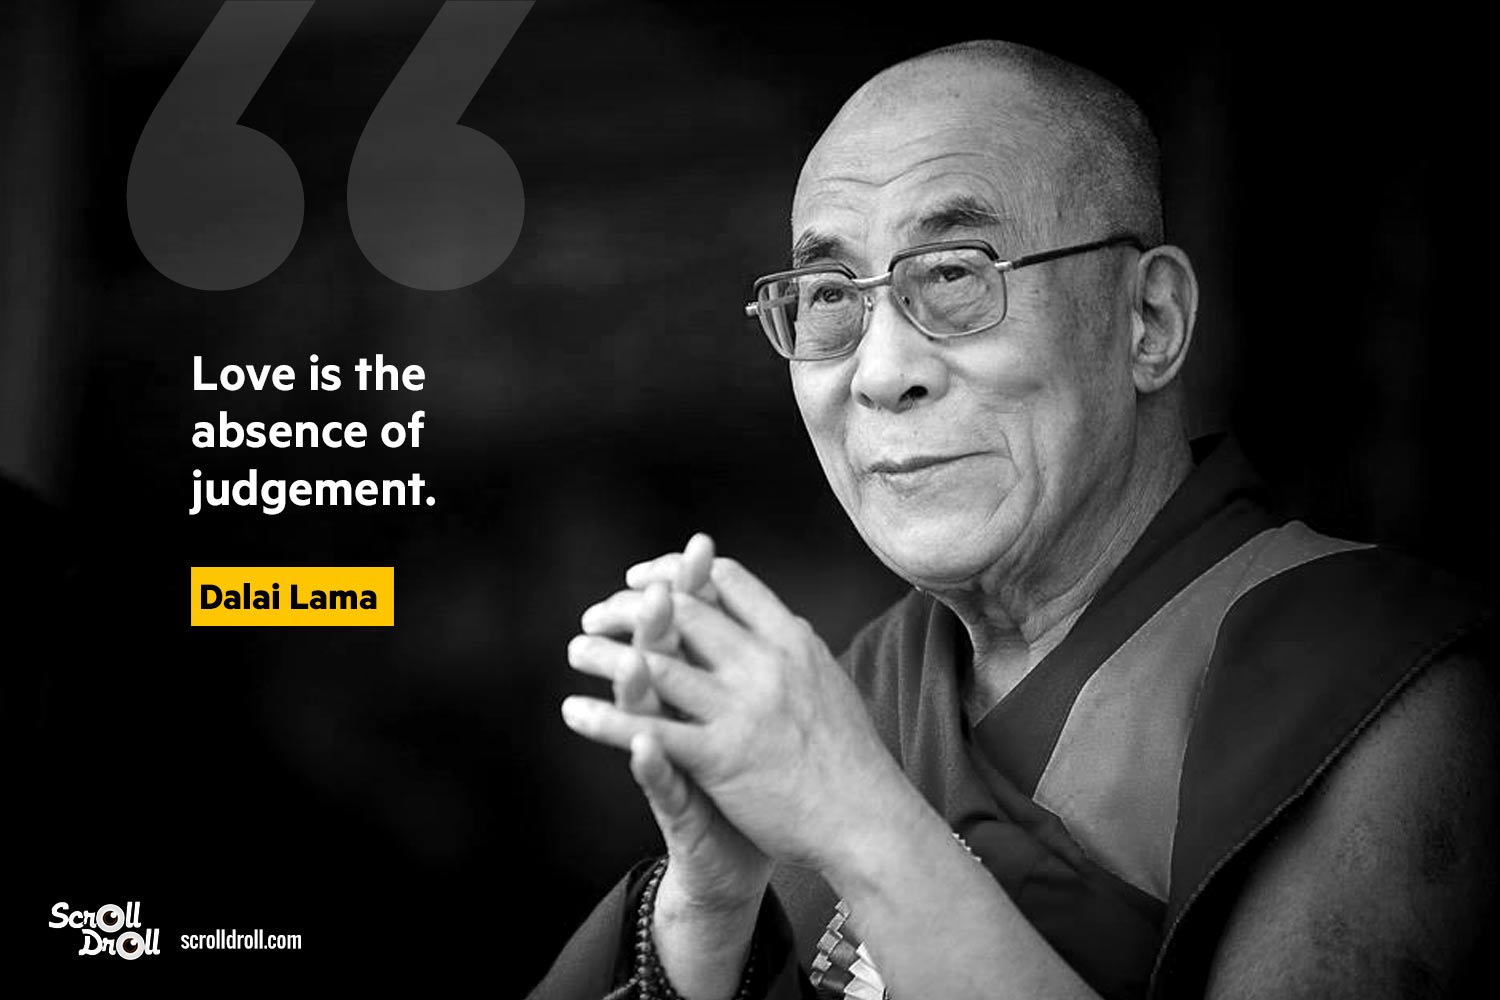 Dalai Lama Quotes On Life 11 Dalai Lama Quotes On Love Life & Compassion